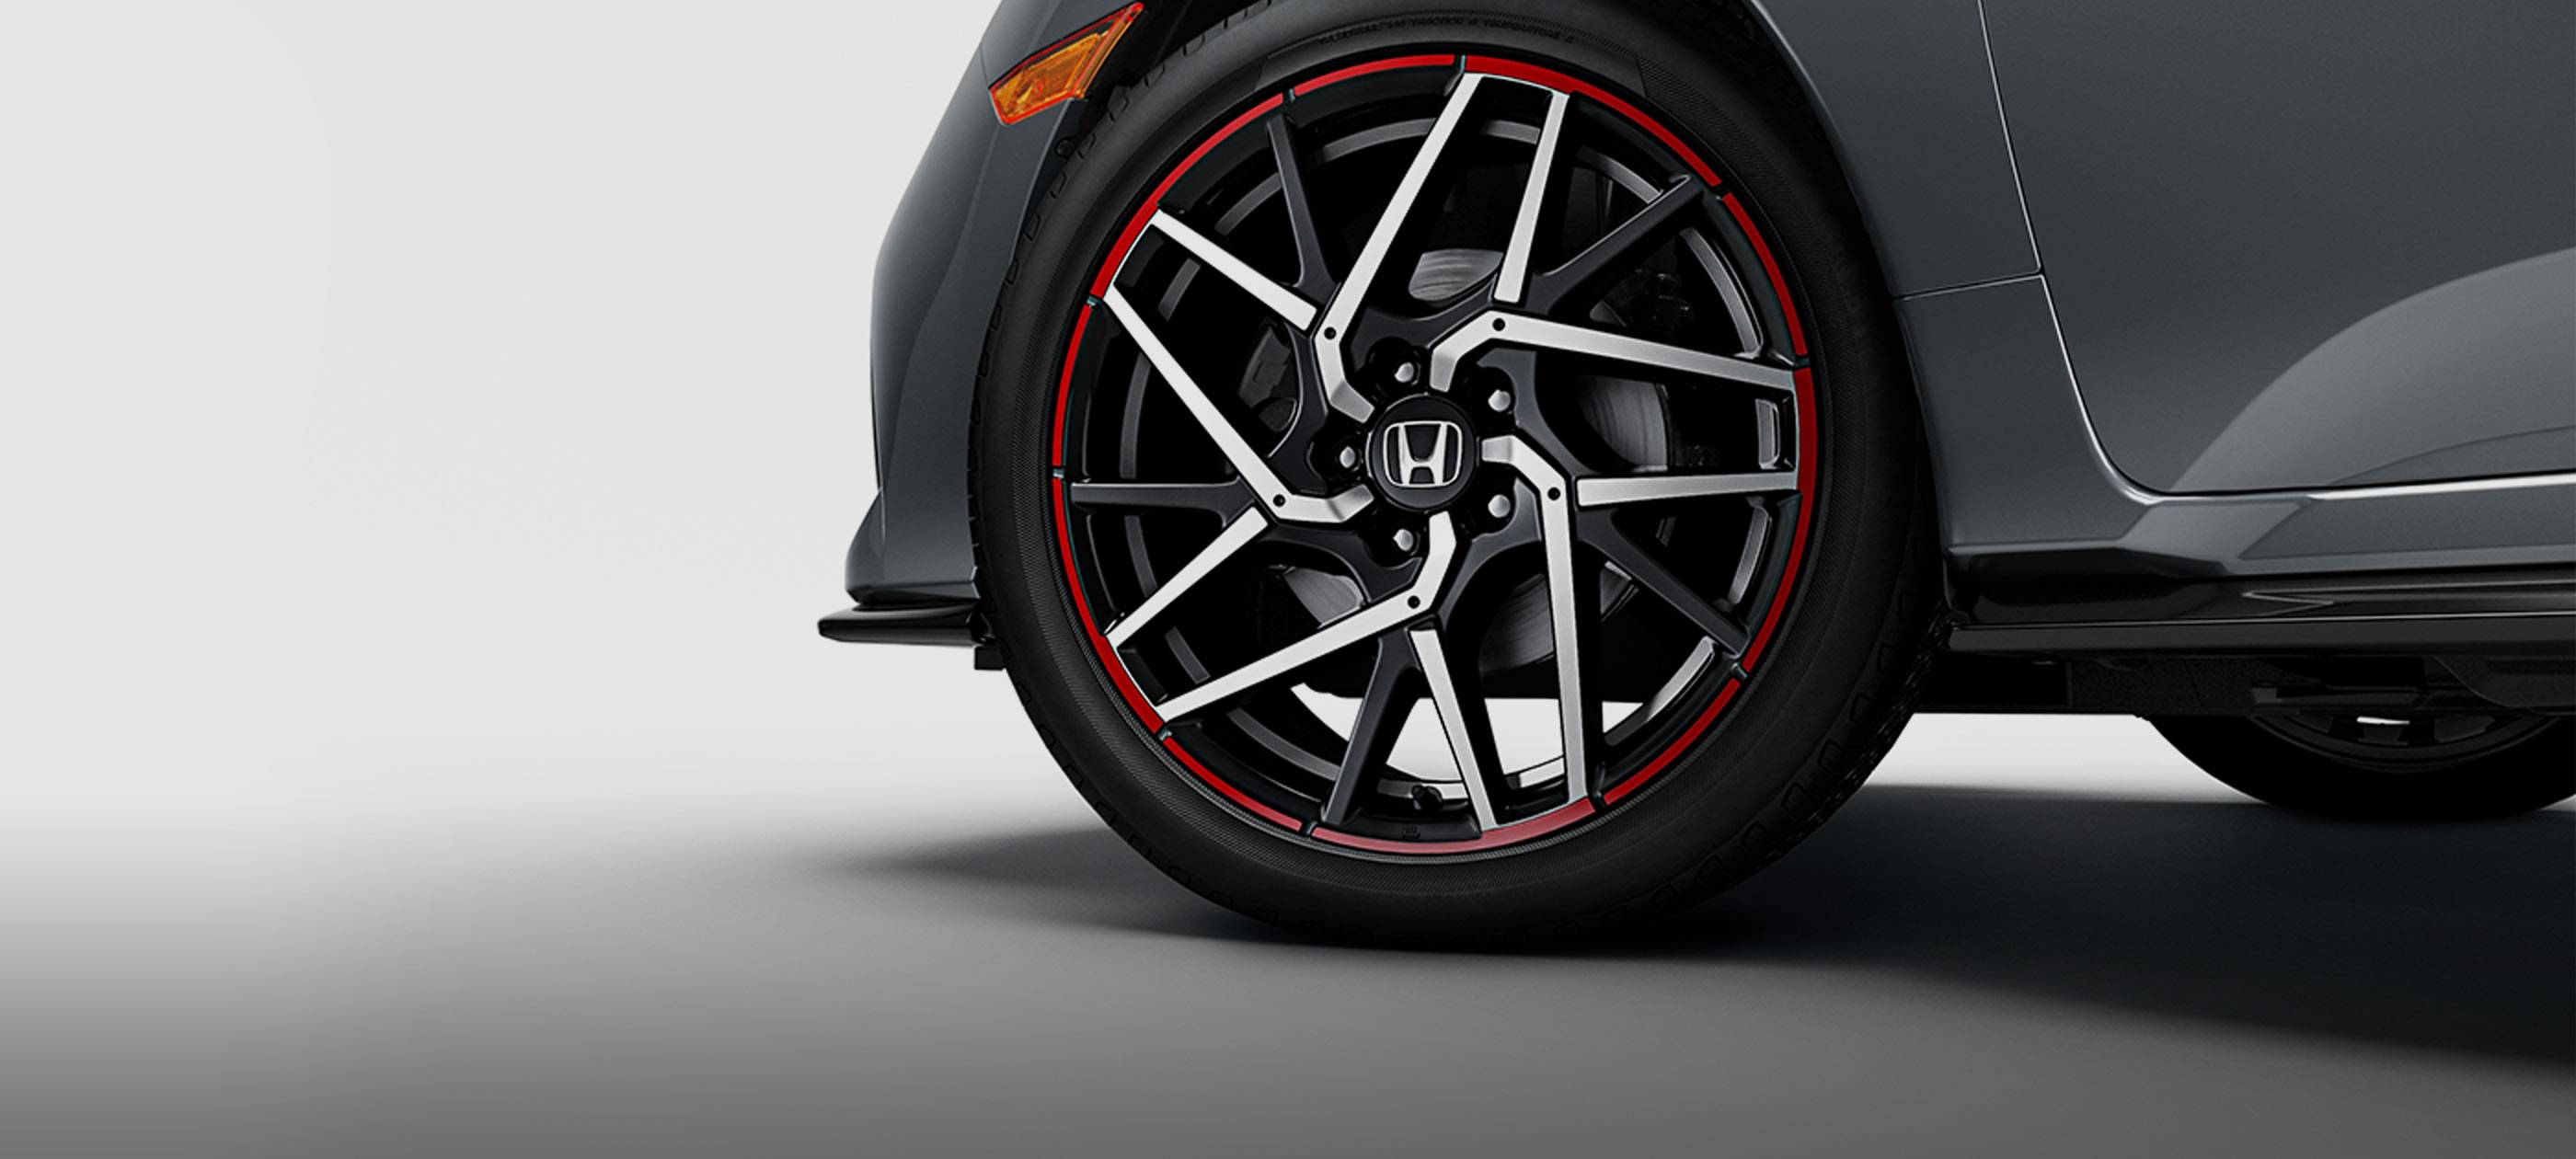 18-inch Accessory Alloy Wheels